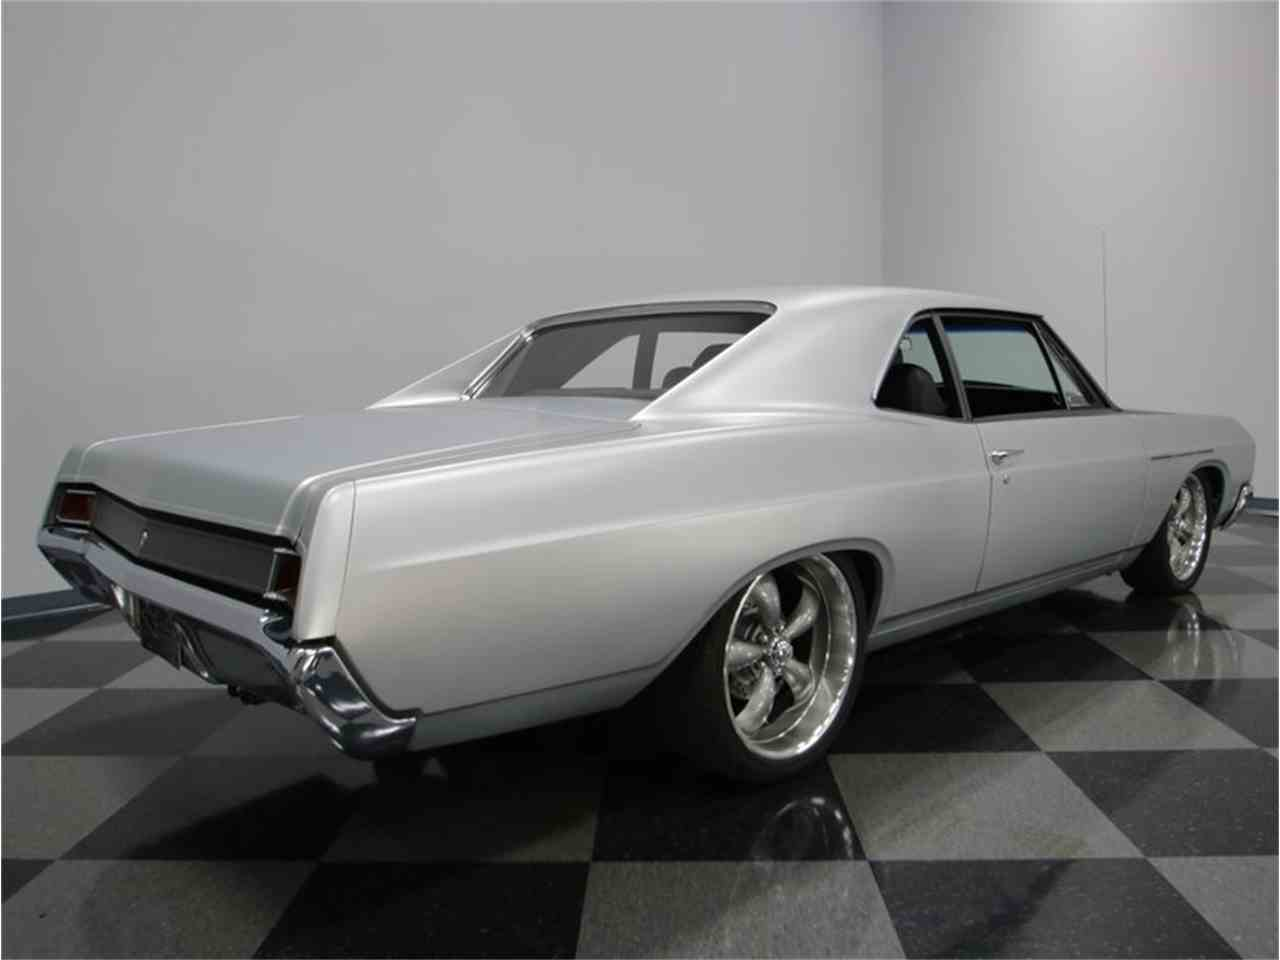 Large Picture of Classic '66 Buick Skylark Pro Touring located in Georgia Offered by Streetside Classics - Atlanta - L93D